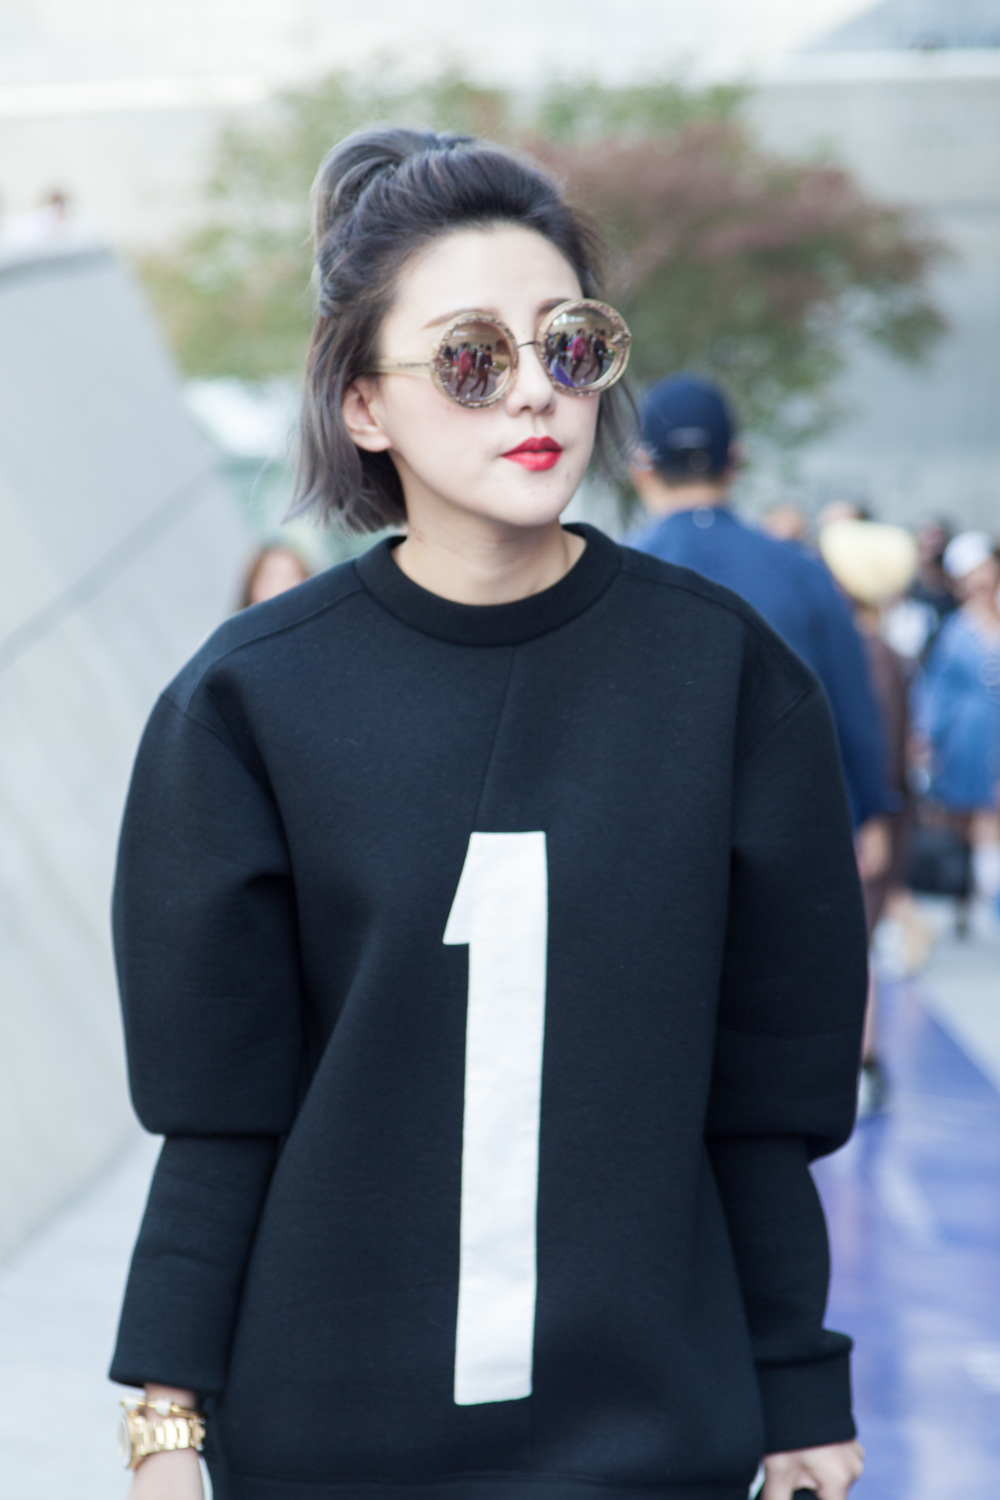 SeoulFashionWeek-SS16-street-style-mirrored-sunglasses-3